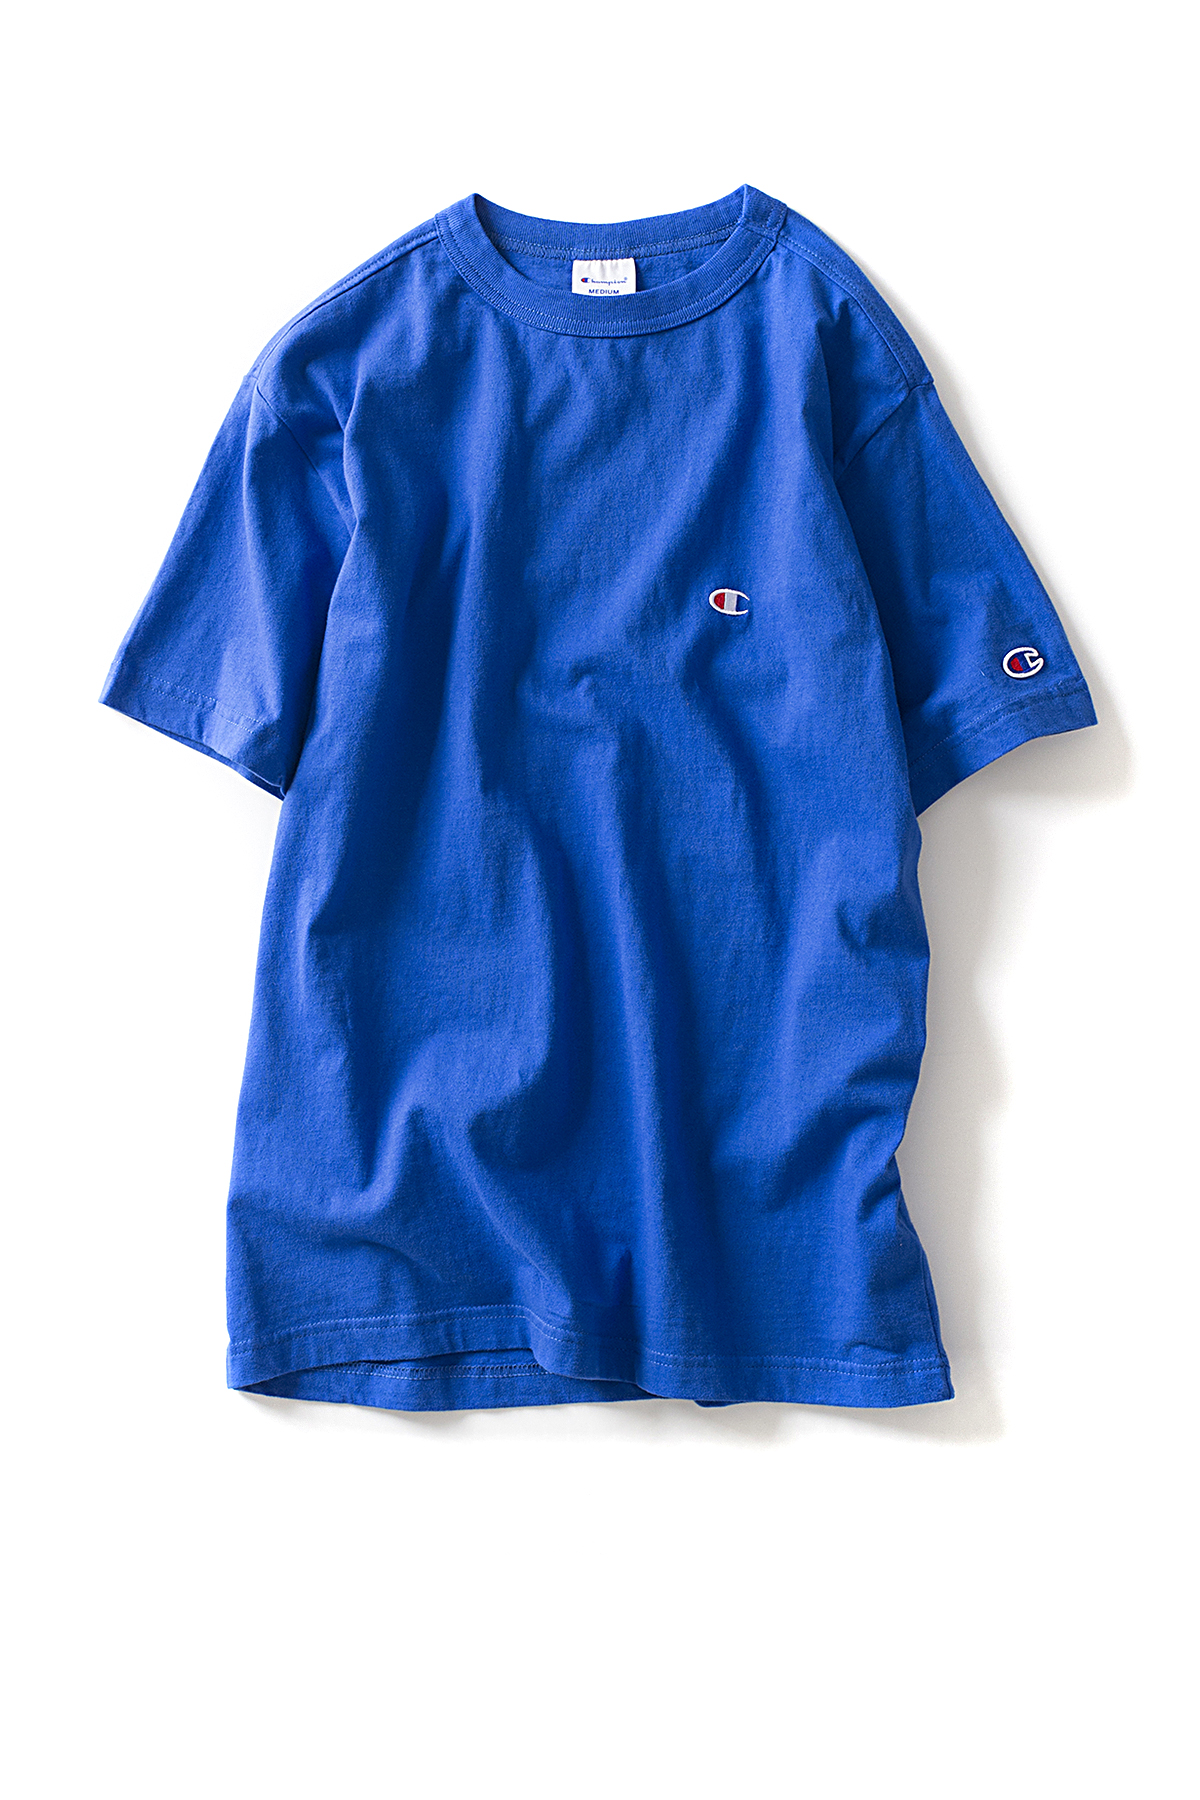 Champion : Basic T-Shirt (Royal Blue)